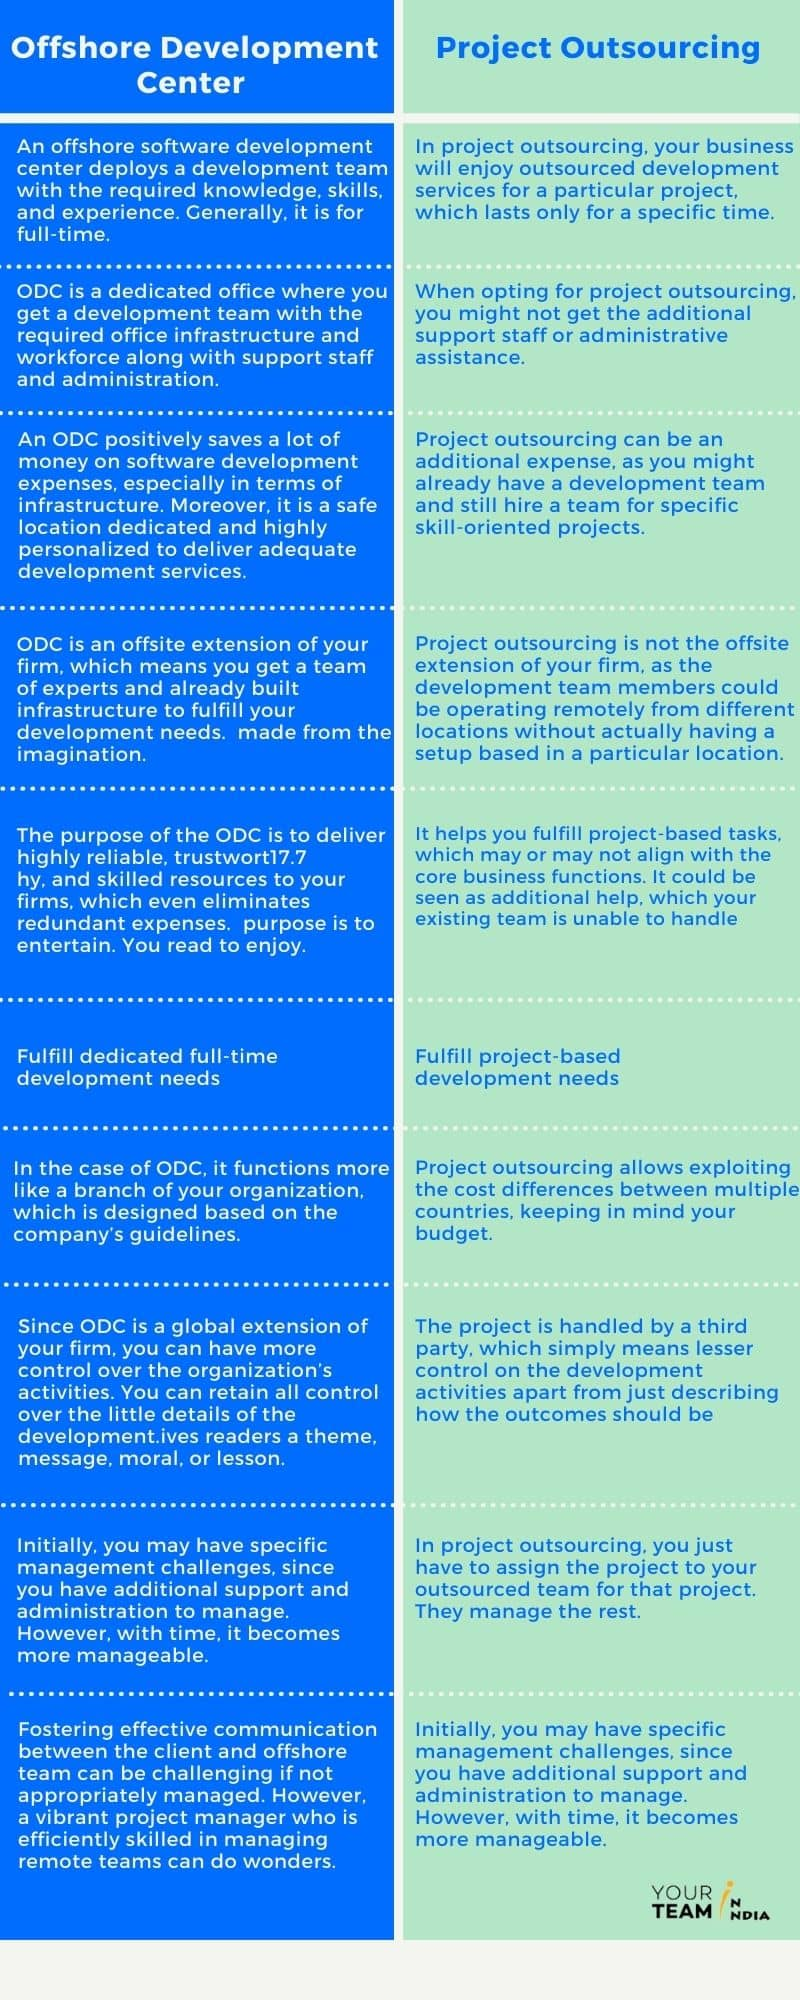 ODC vs outsourcing